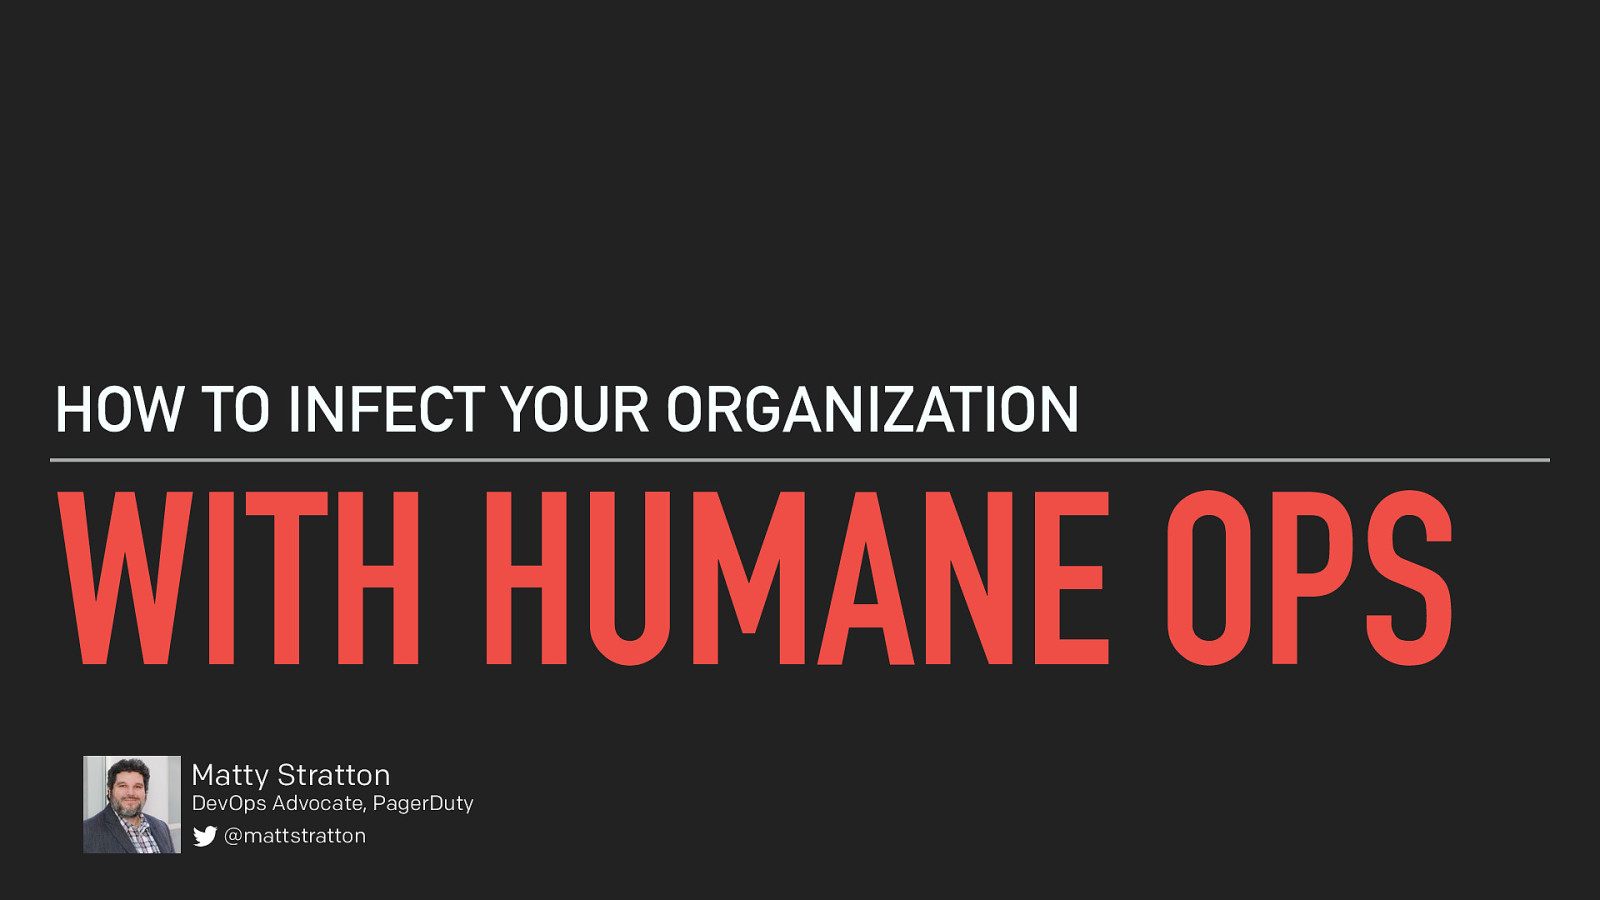 How Do You Infect Your Organization With Humane Ops?